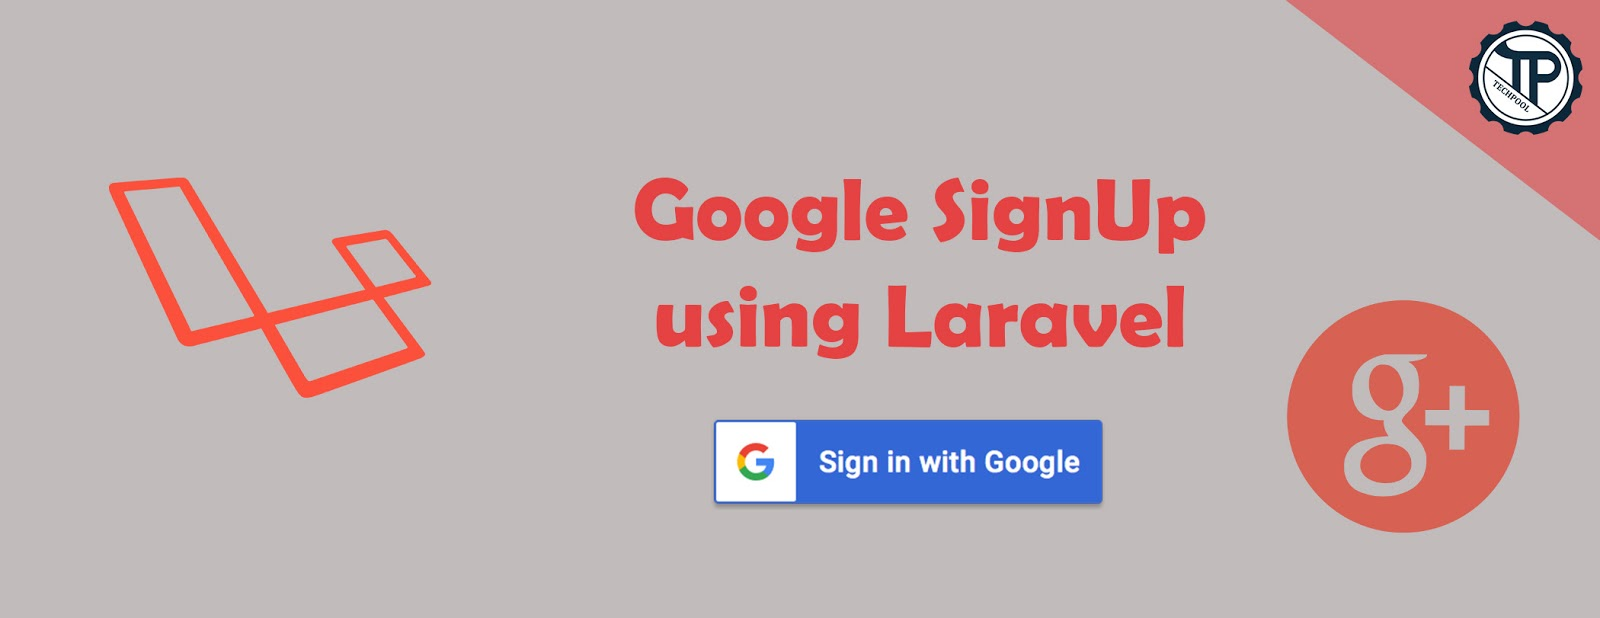 Google SignUp in with Laravel